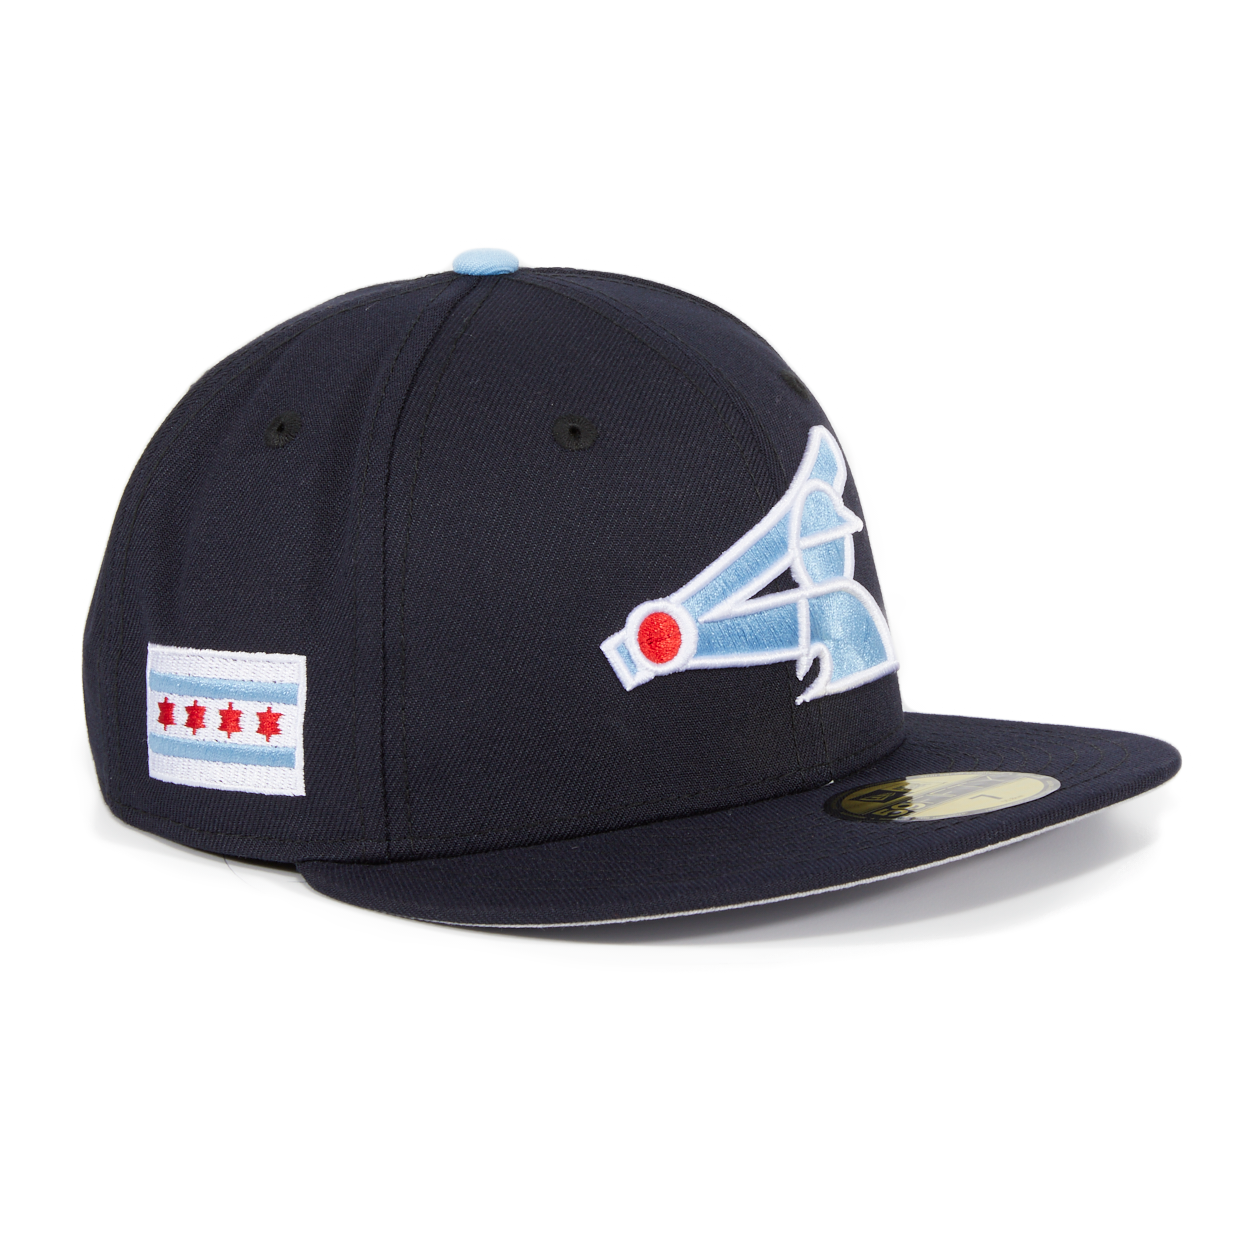 61860b60954 Exclusive New Era 59Fifty Chicago White Sox City Flag Patch Hat - Navy – Hat  Club